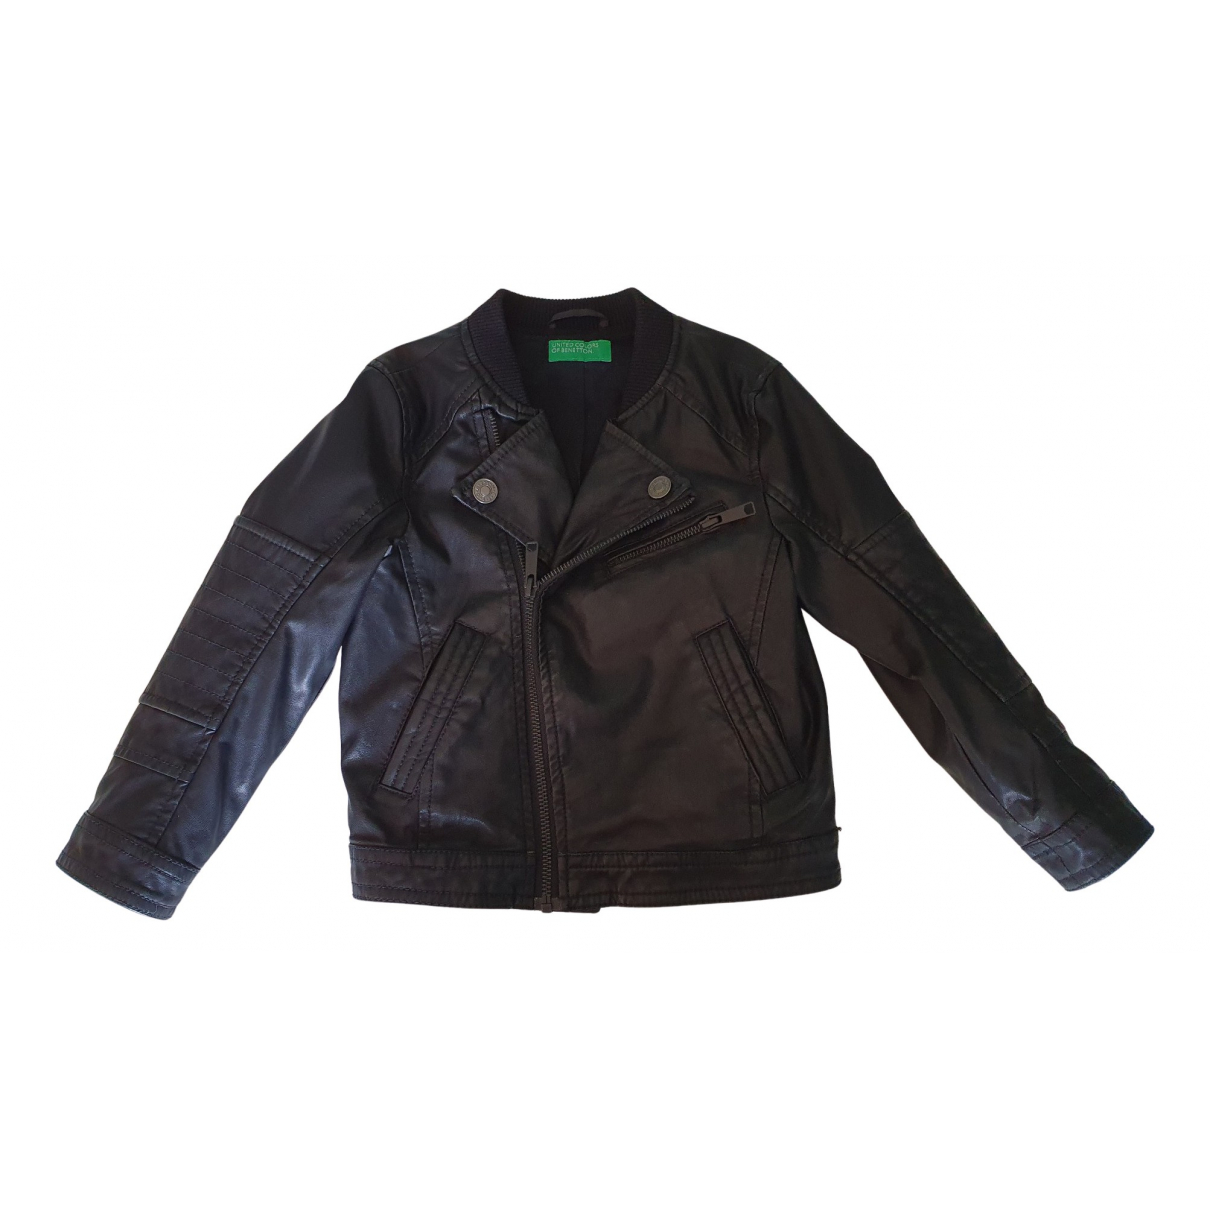 Benetton N Black jacket & coat for Kids 3 years - up to 98cm FR